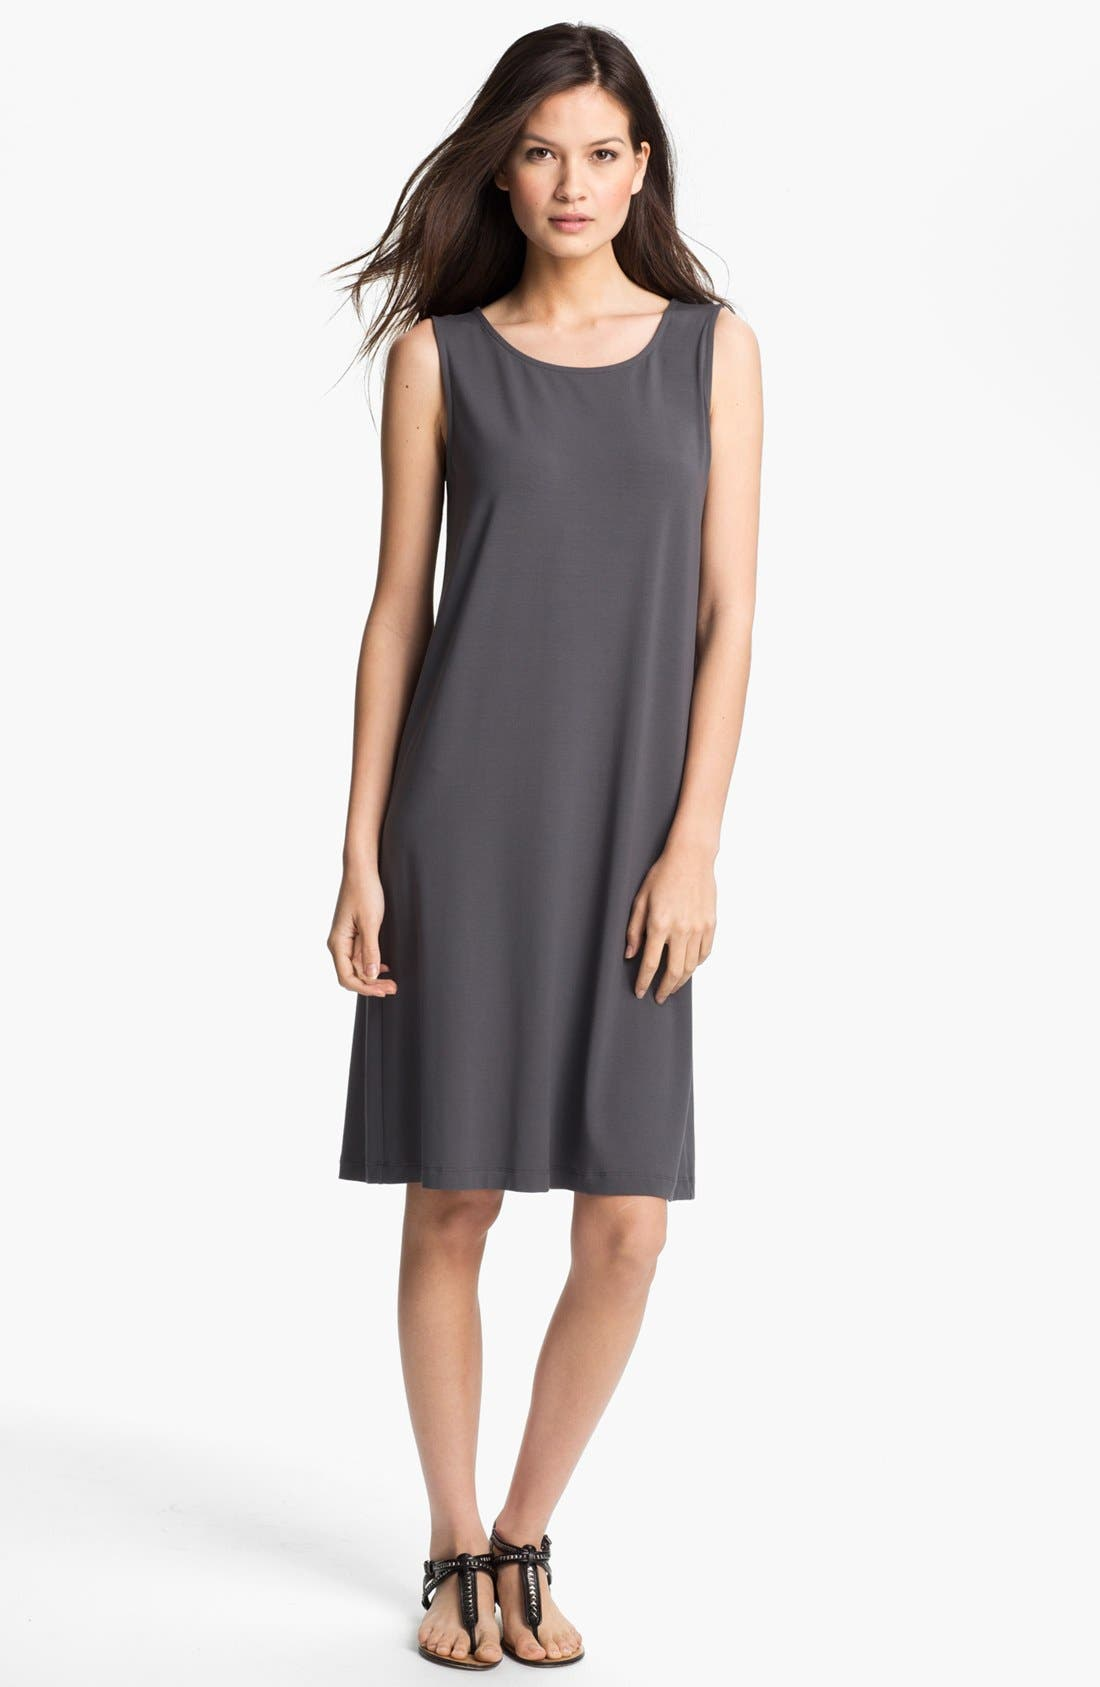 Alternate Image 1 Selected - Eileen Fisher Jewel Neck Shift Dress (Petite)